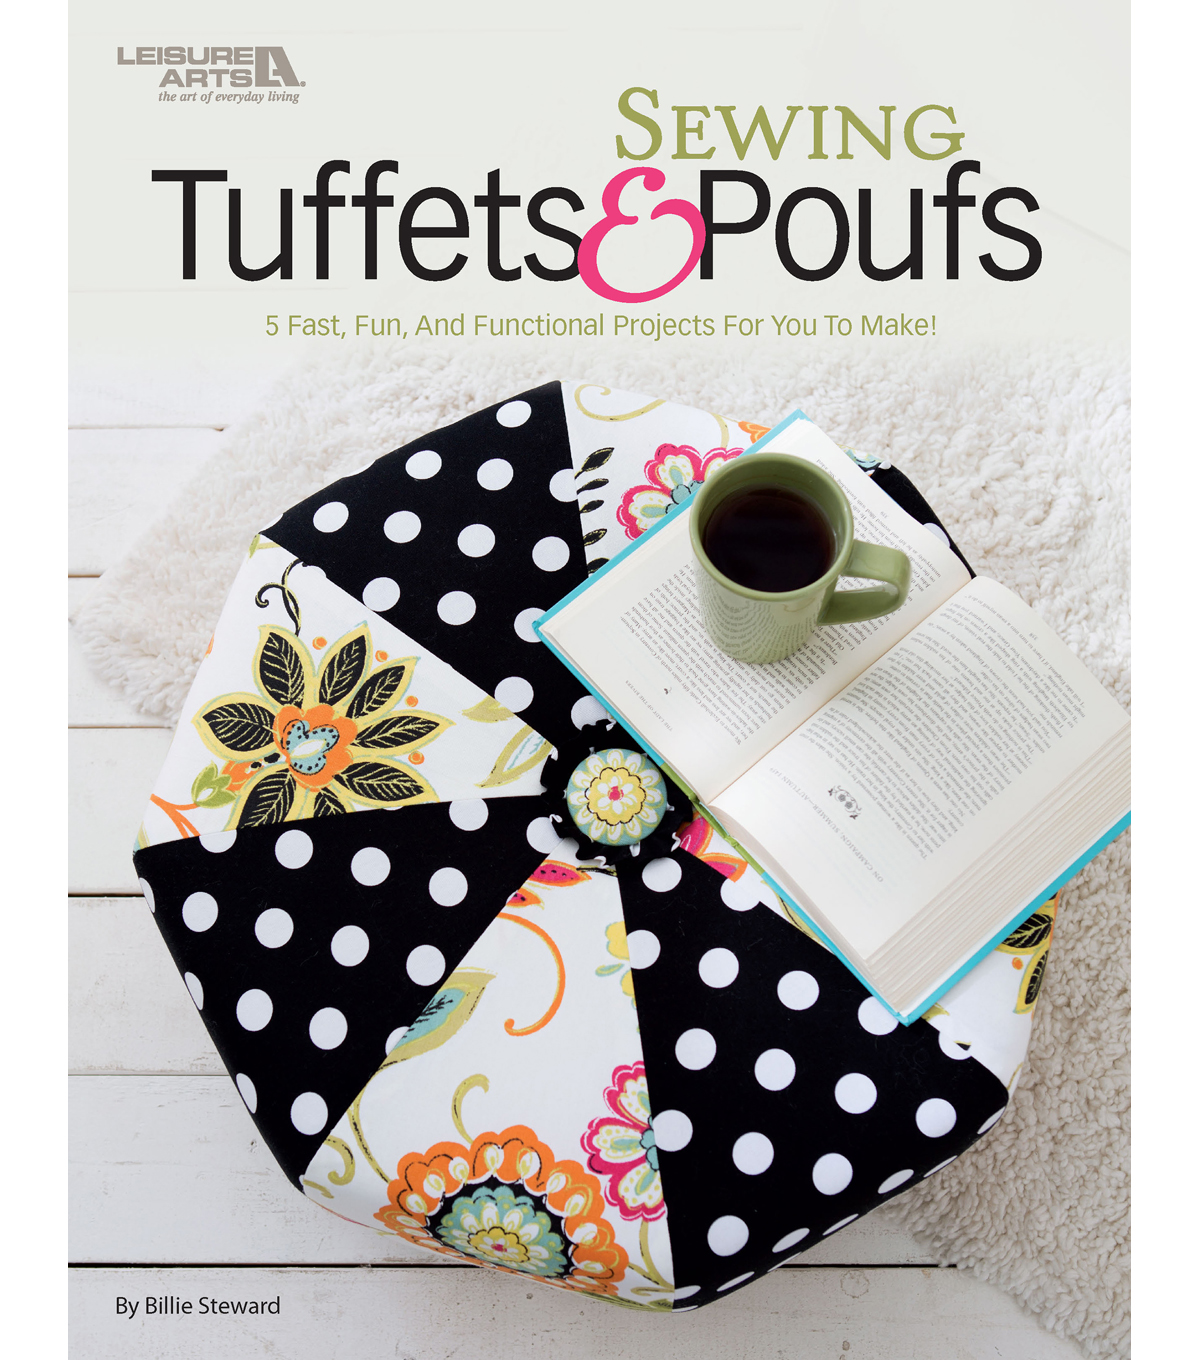 Leisure Arts Sewing Tuffets and Poufs